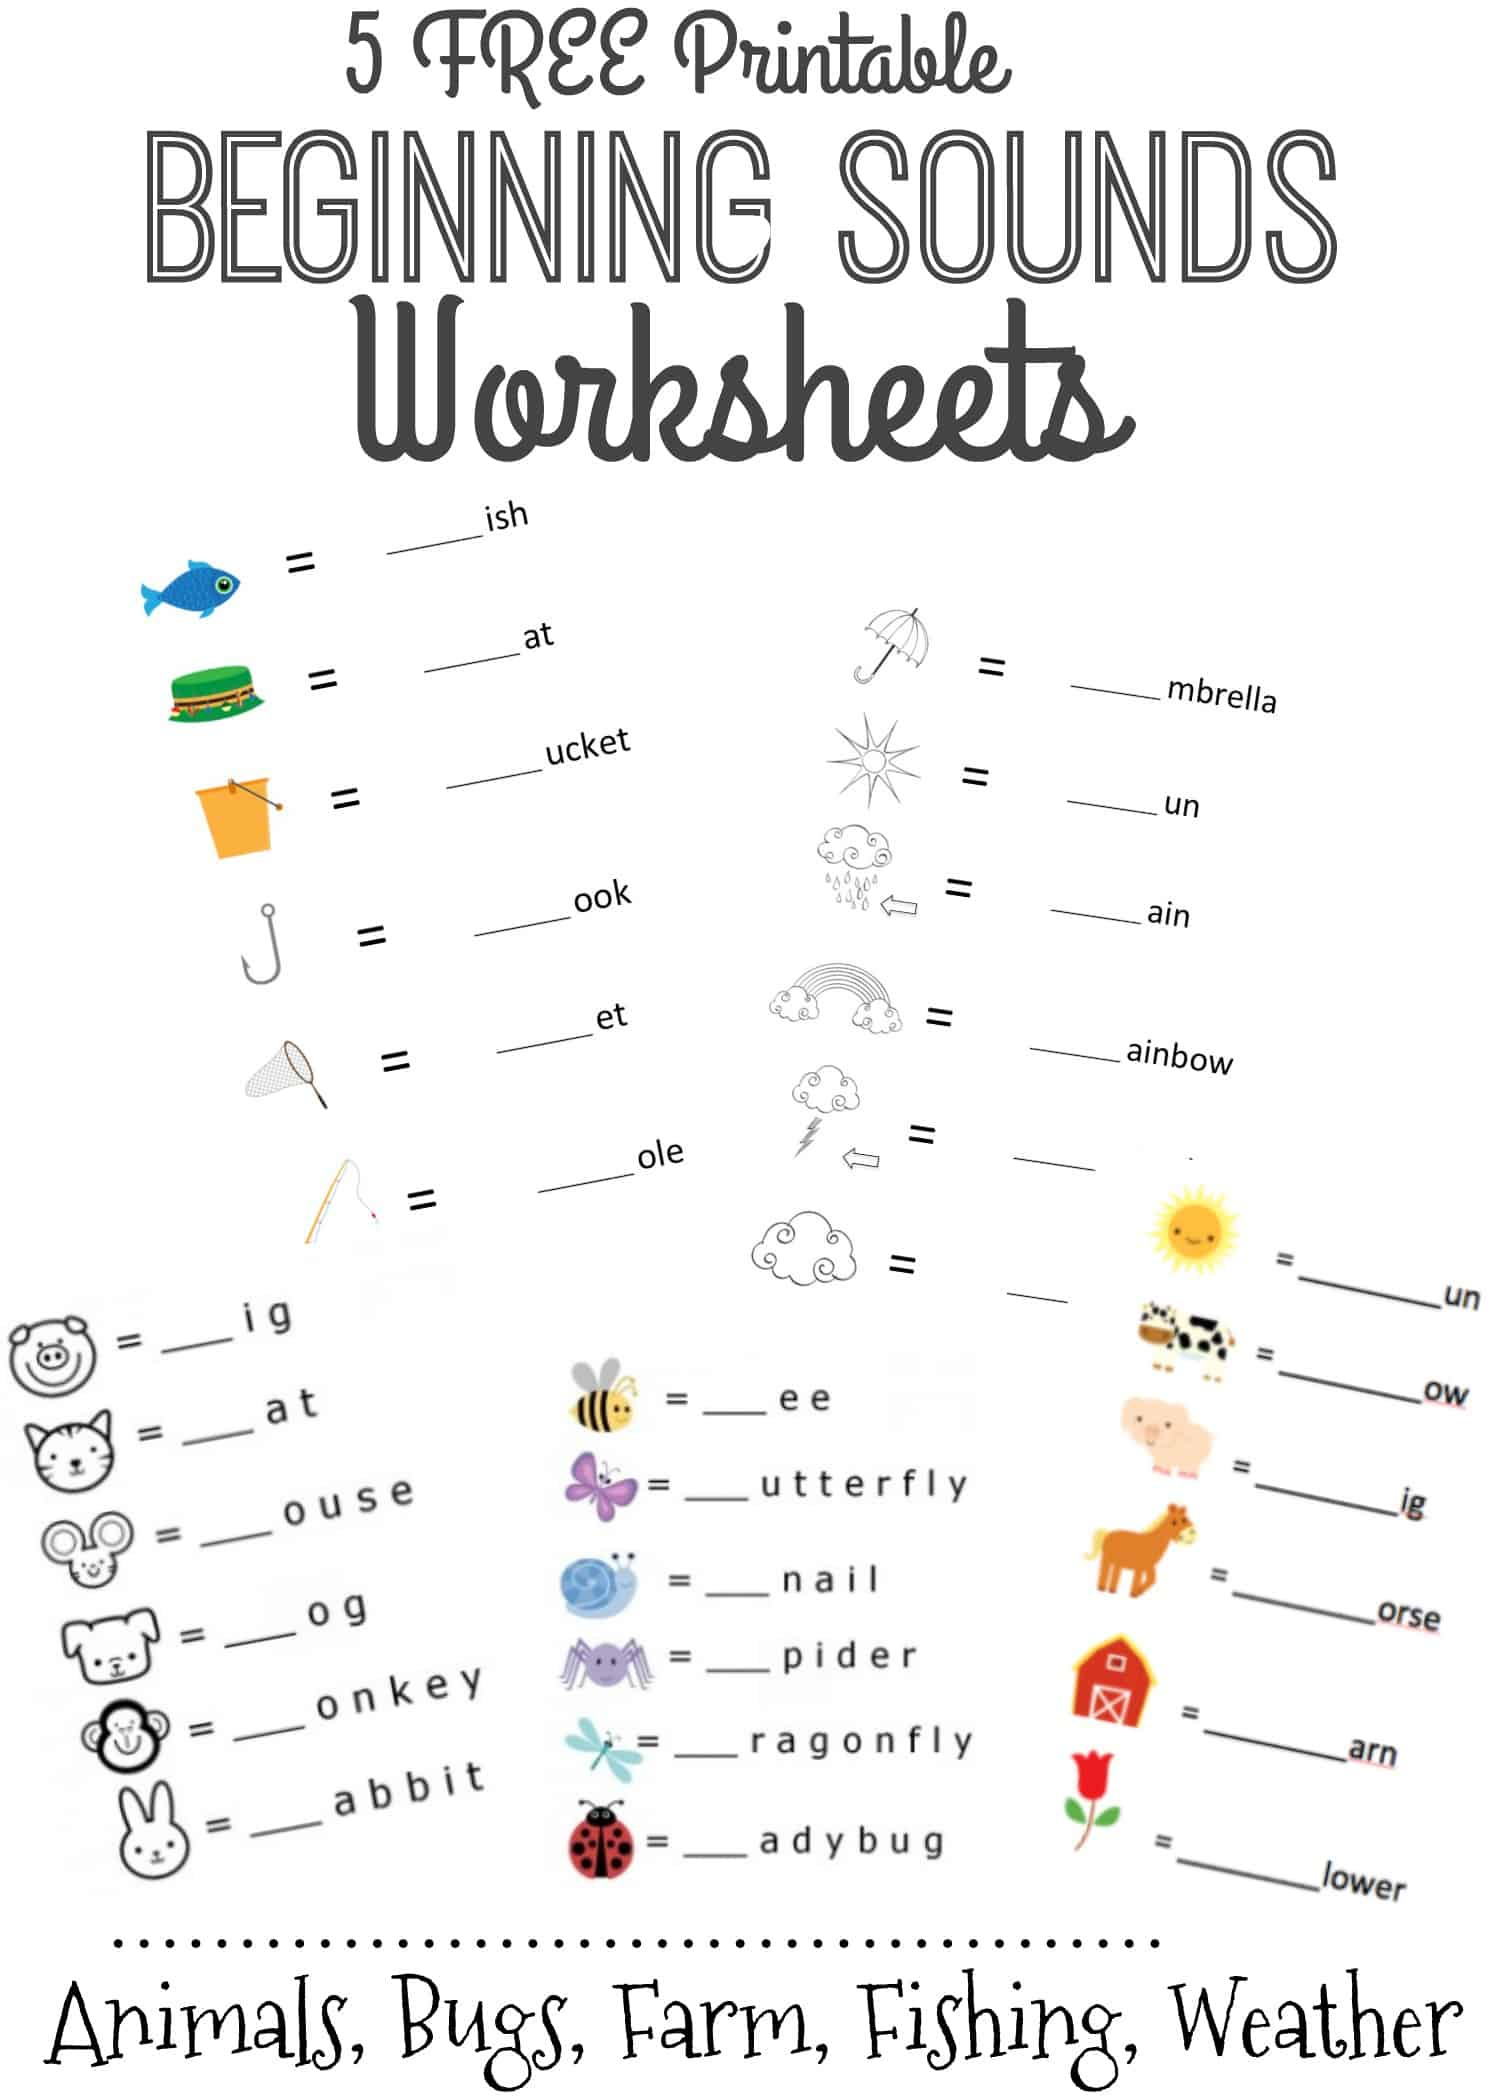 Beginning Sound Worksheets Kindergarten Worksheets Initial